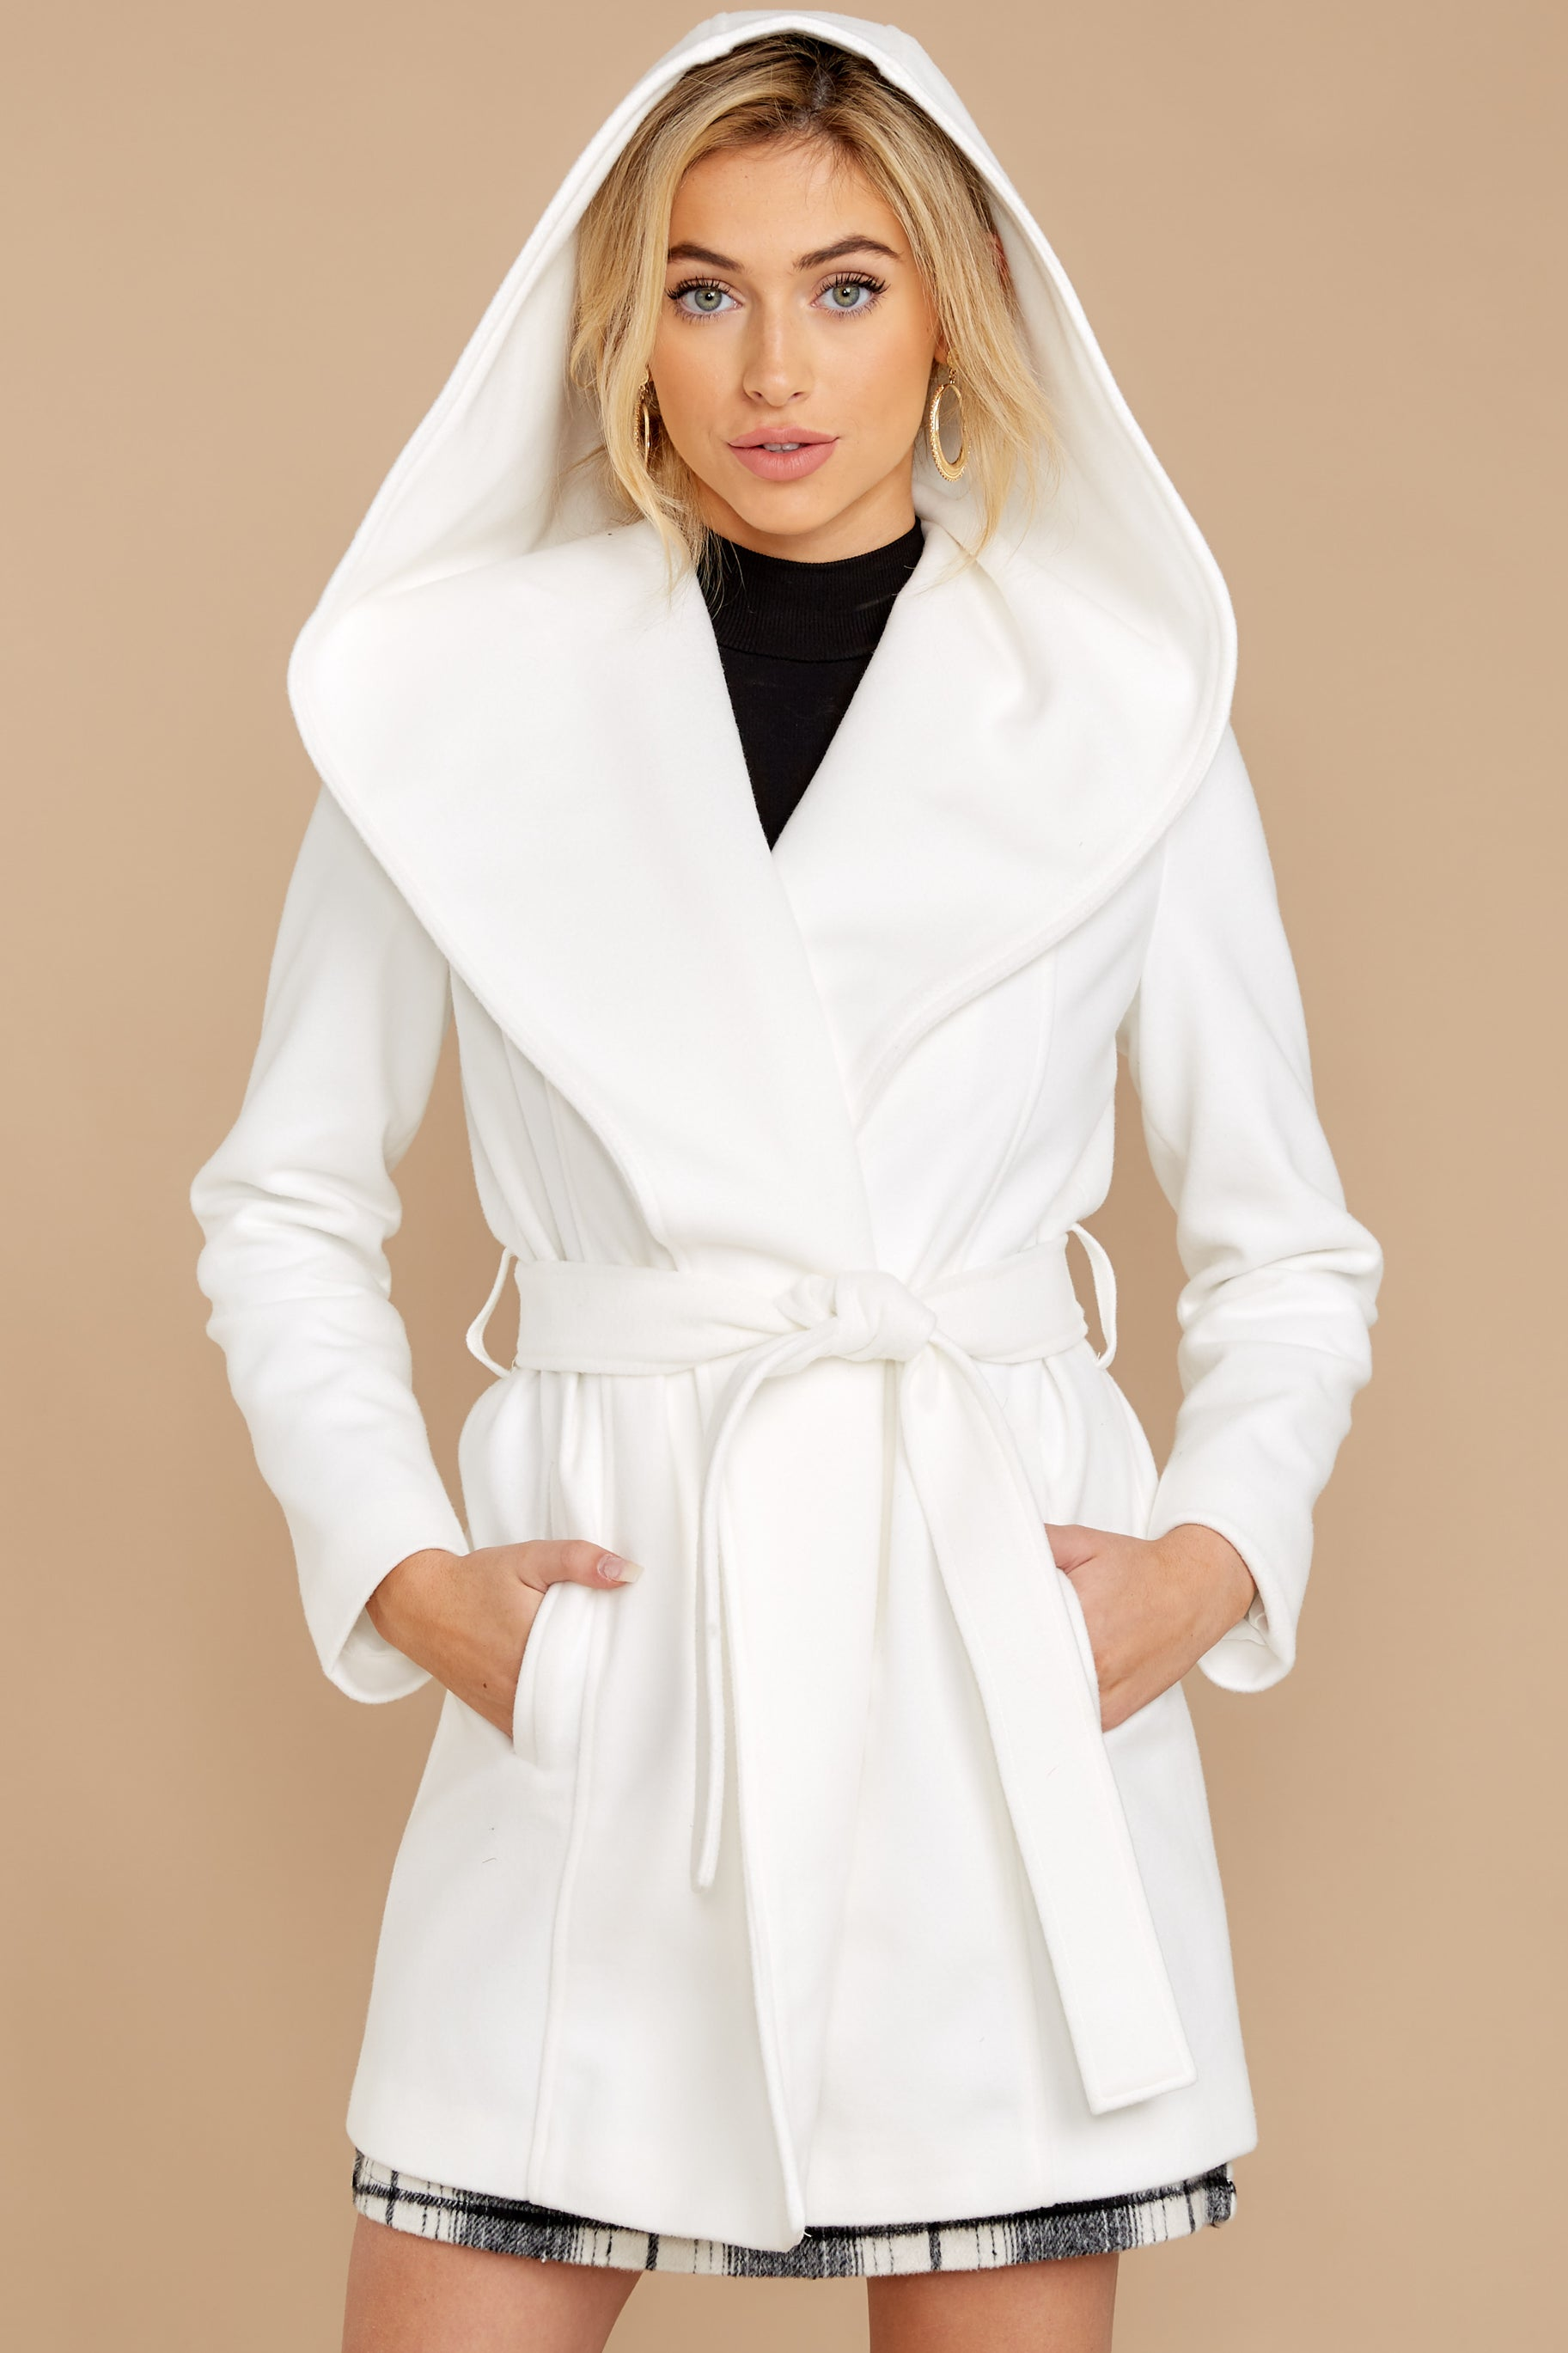 8 People To See White Coat at reddressboutique.com